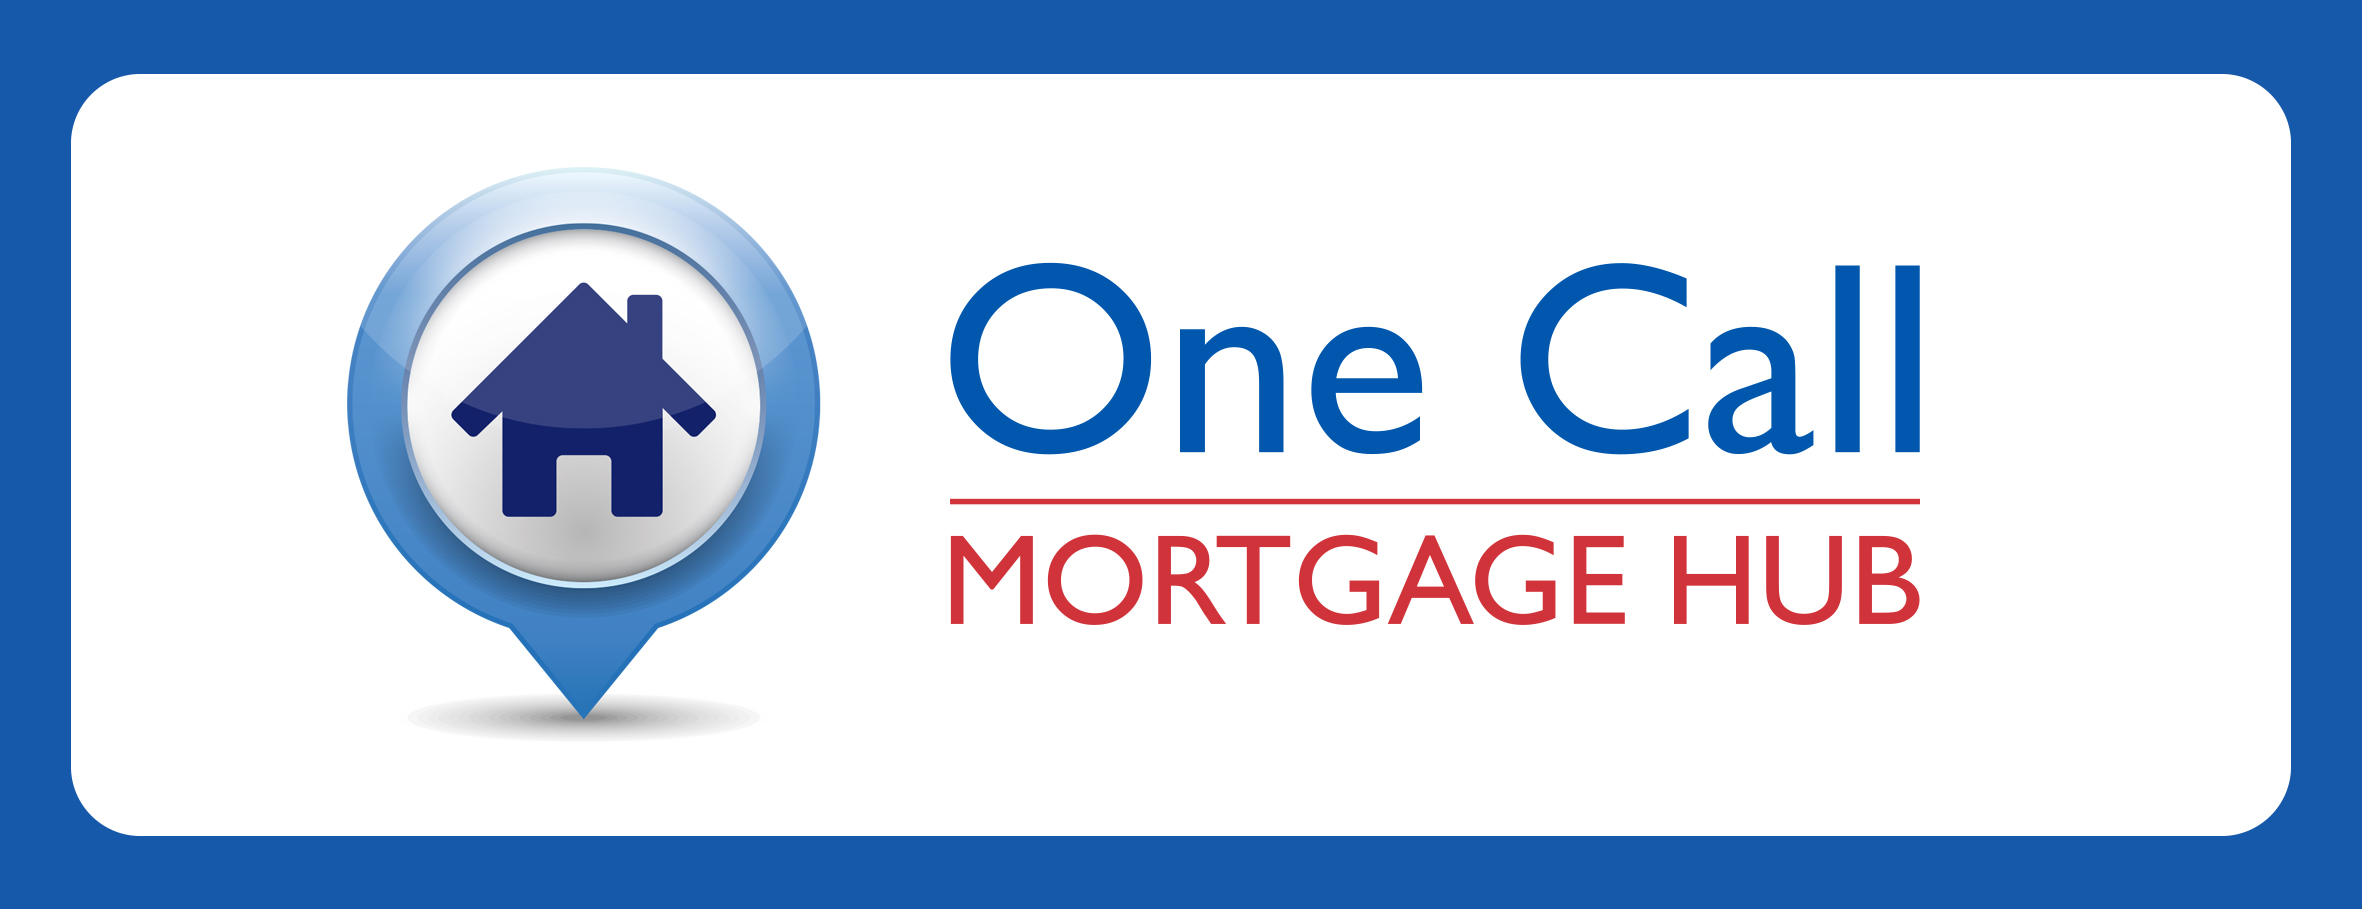 one call mortgage hub logo